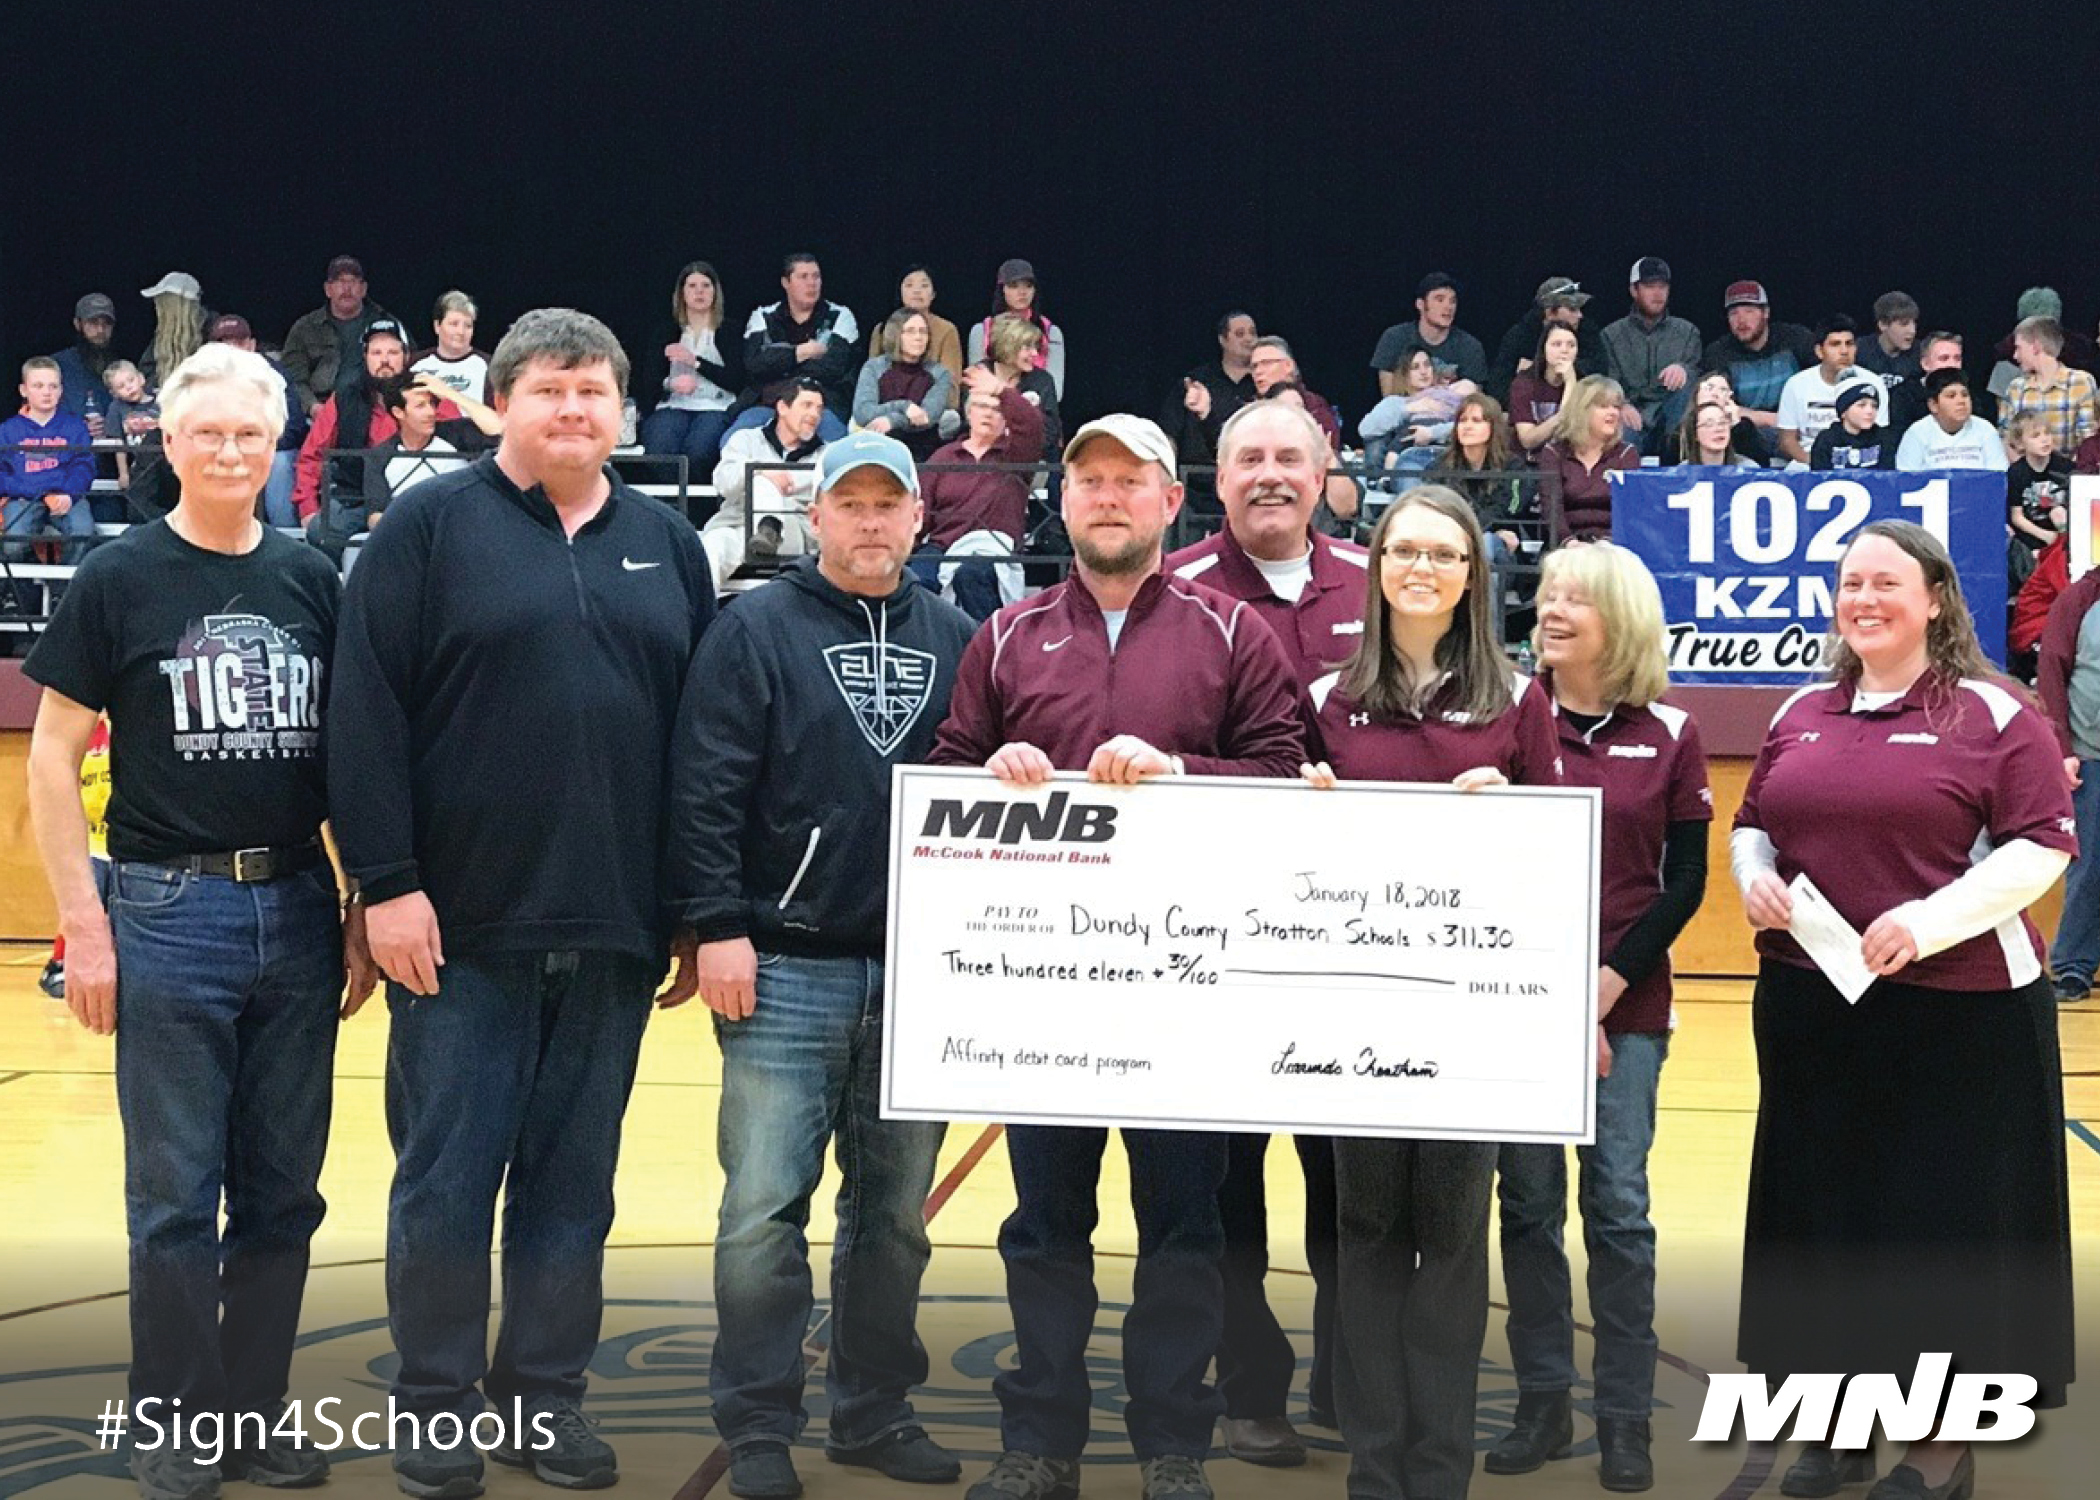 Dundy County - Stratton Public Schools Receives Donation from Tiger Debit Card Program